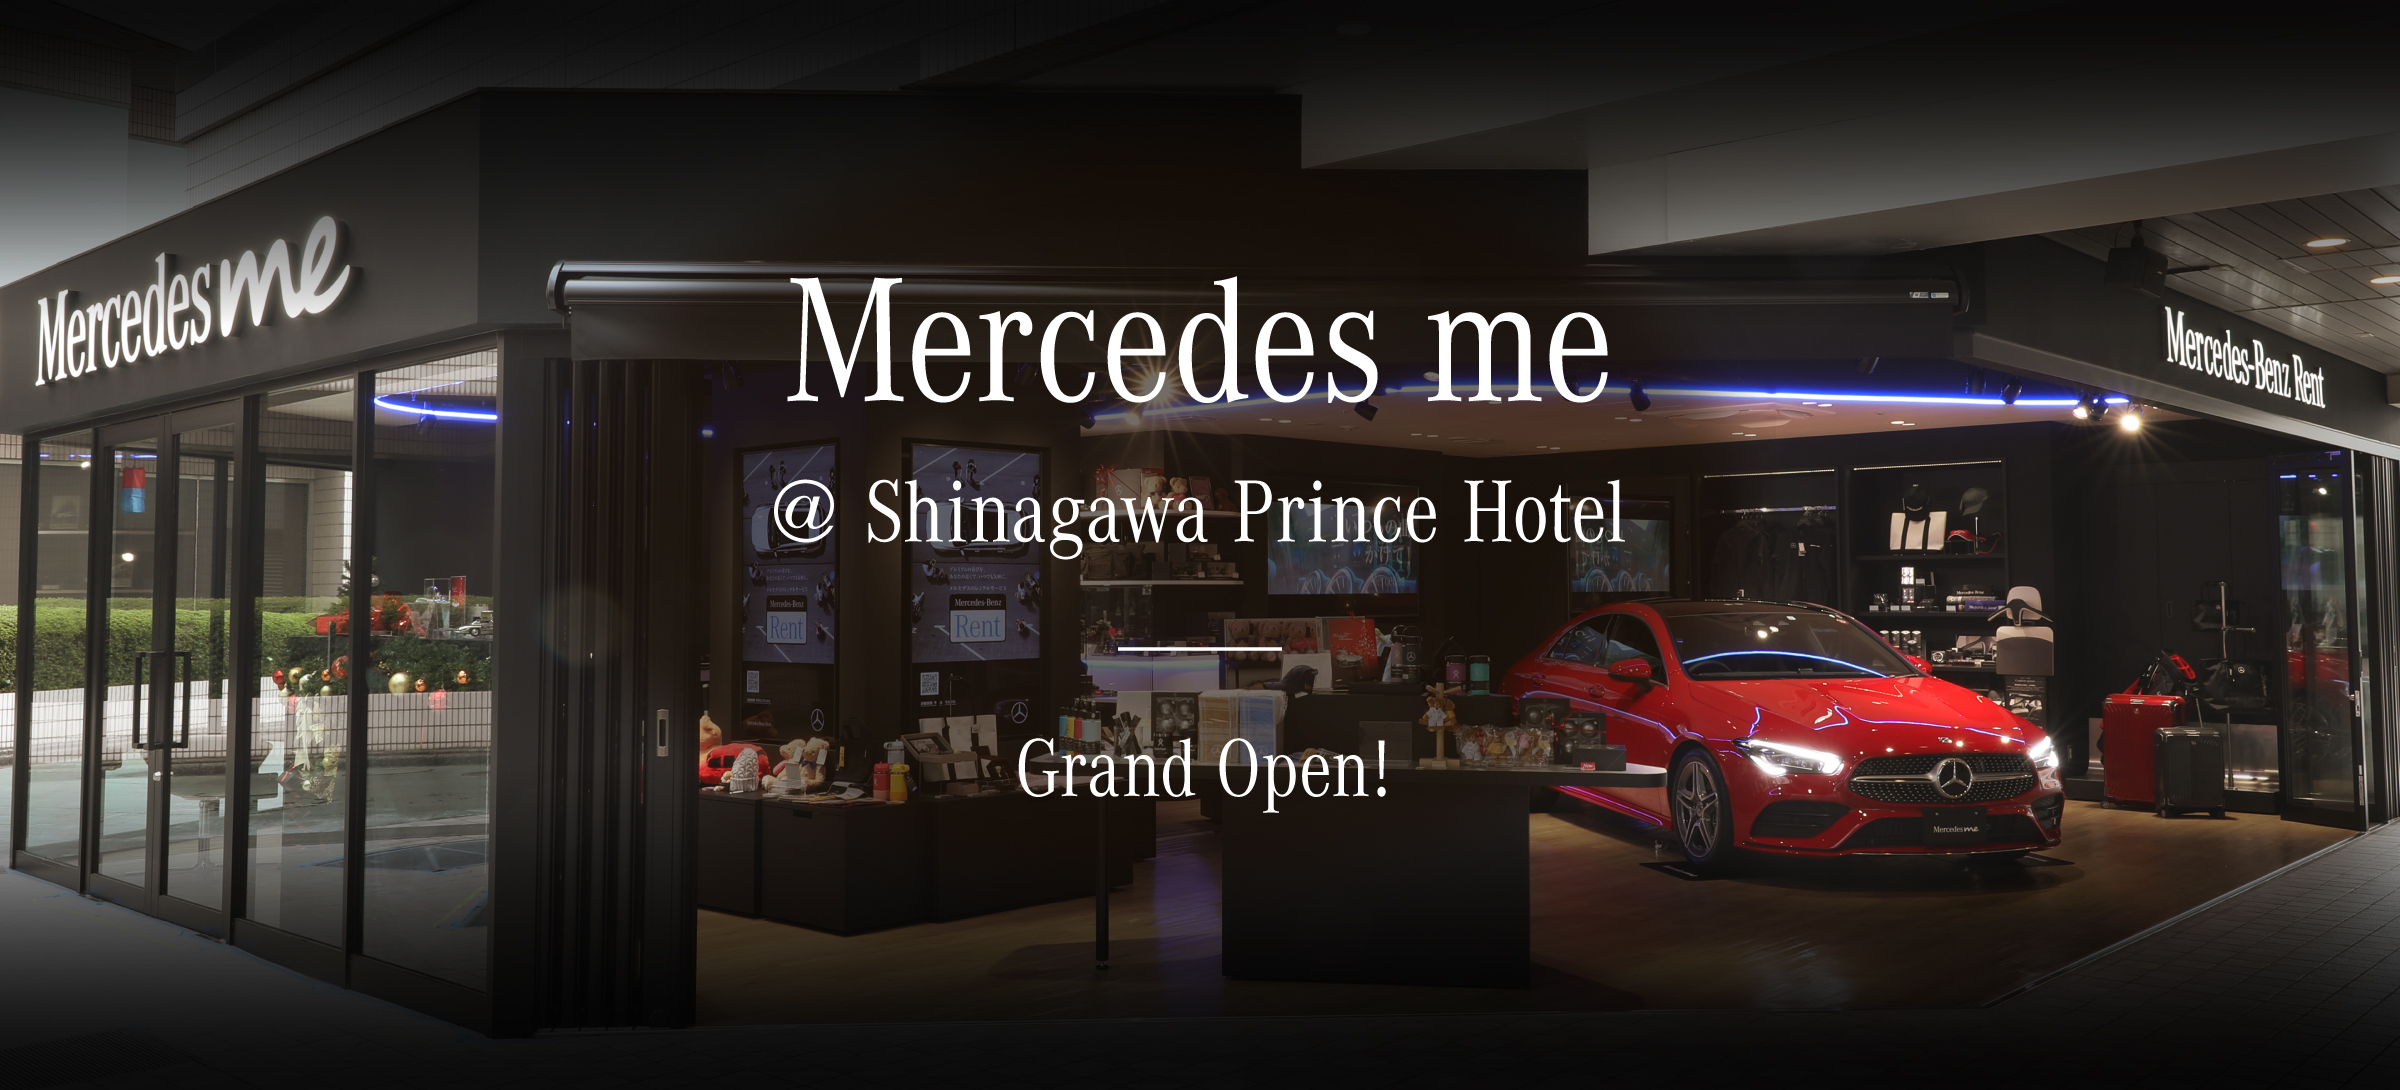 Mercedes me @ Shinagawa Prince Hotel Grand Open!